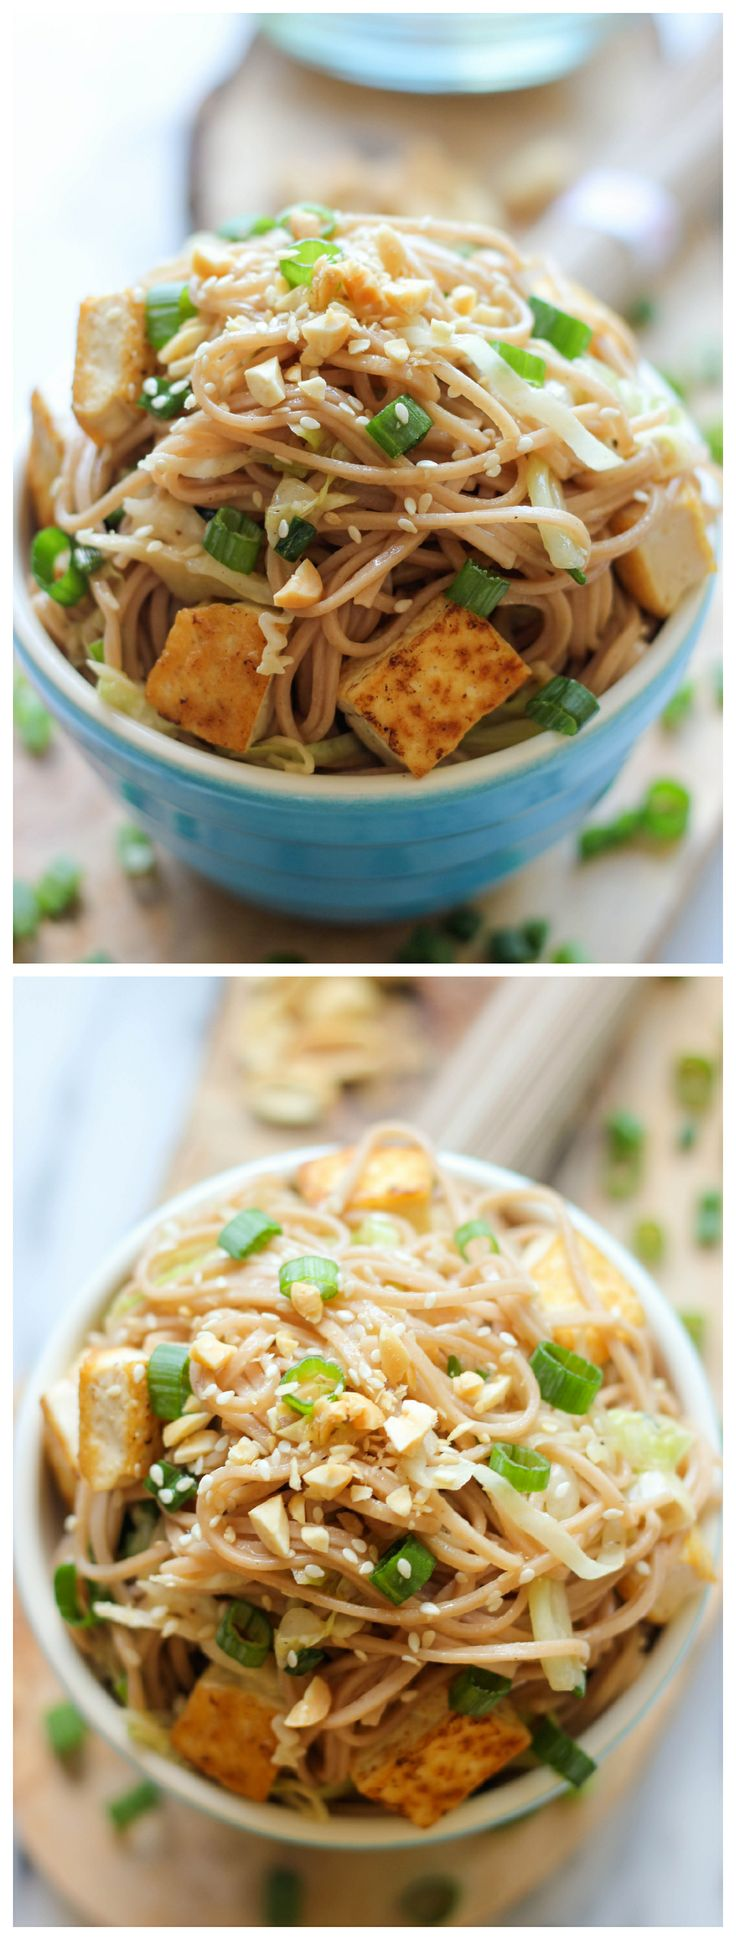 Tofu Soba Noodles - This quick and easy vegetarian noodle dish comes together in just 20 minutes! @Trent Butts-Ah Rhee